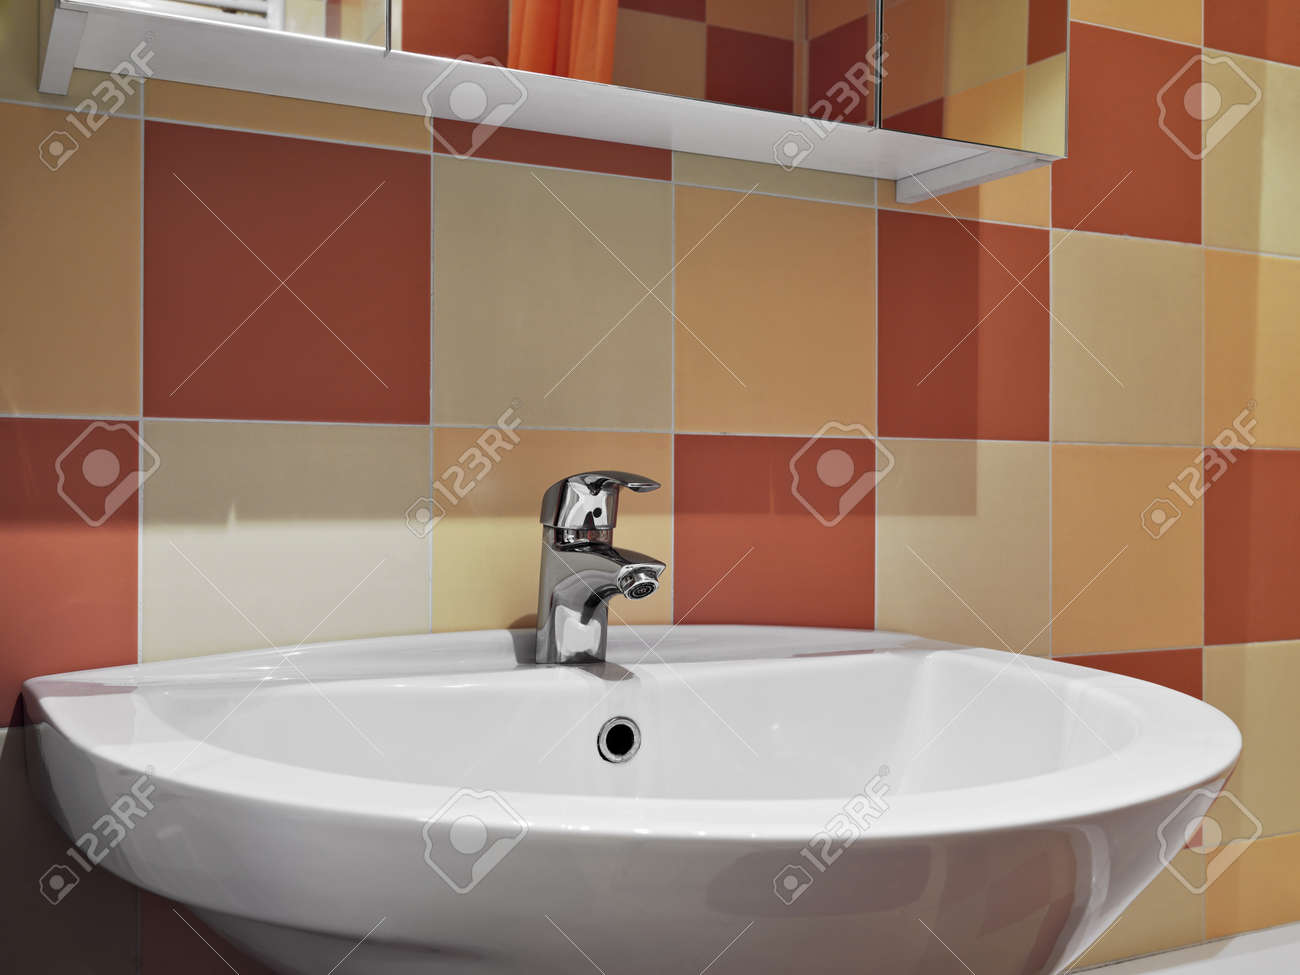 steel faucet for a washbasin with colored tiles in a modern bathroom Stock  Photo   20019249. Steel Faucet For A Washbasin With Colored Tiles In A Modern